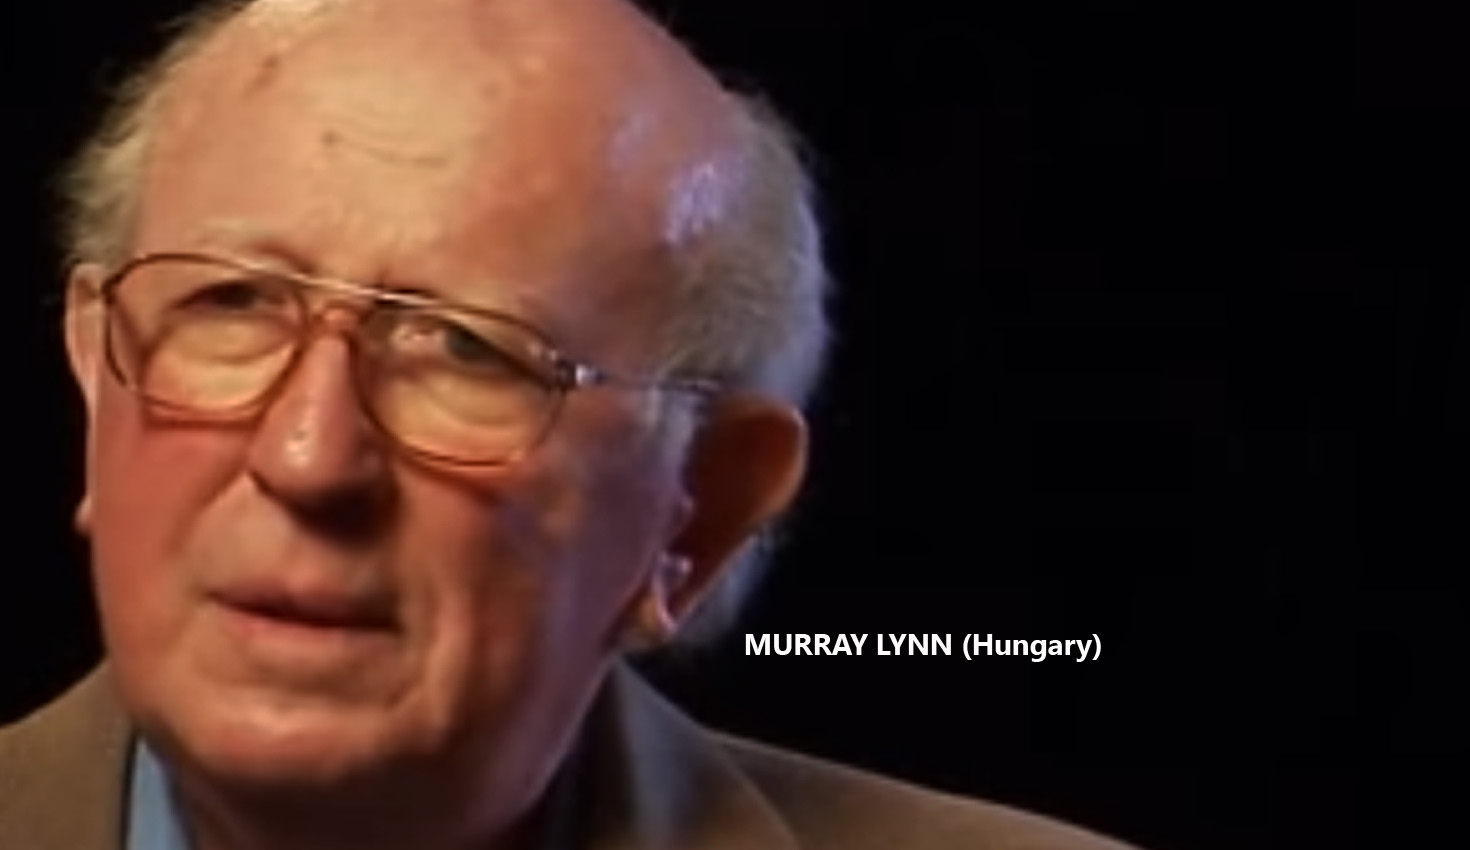 Murray Lynn (Hungary): Remarkable Stories from the Holocaust